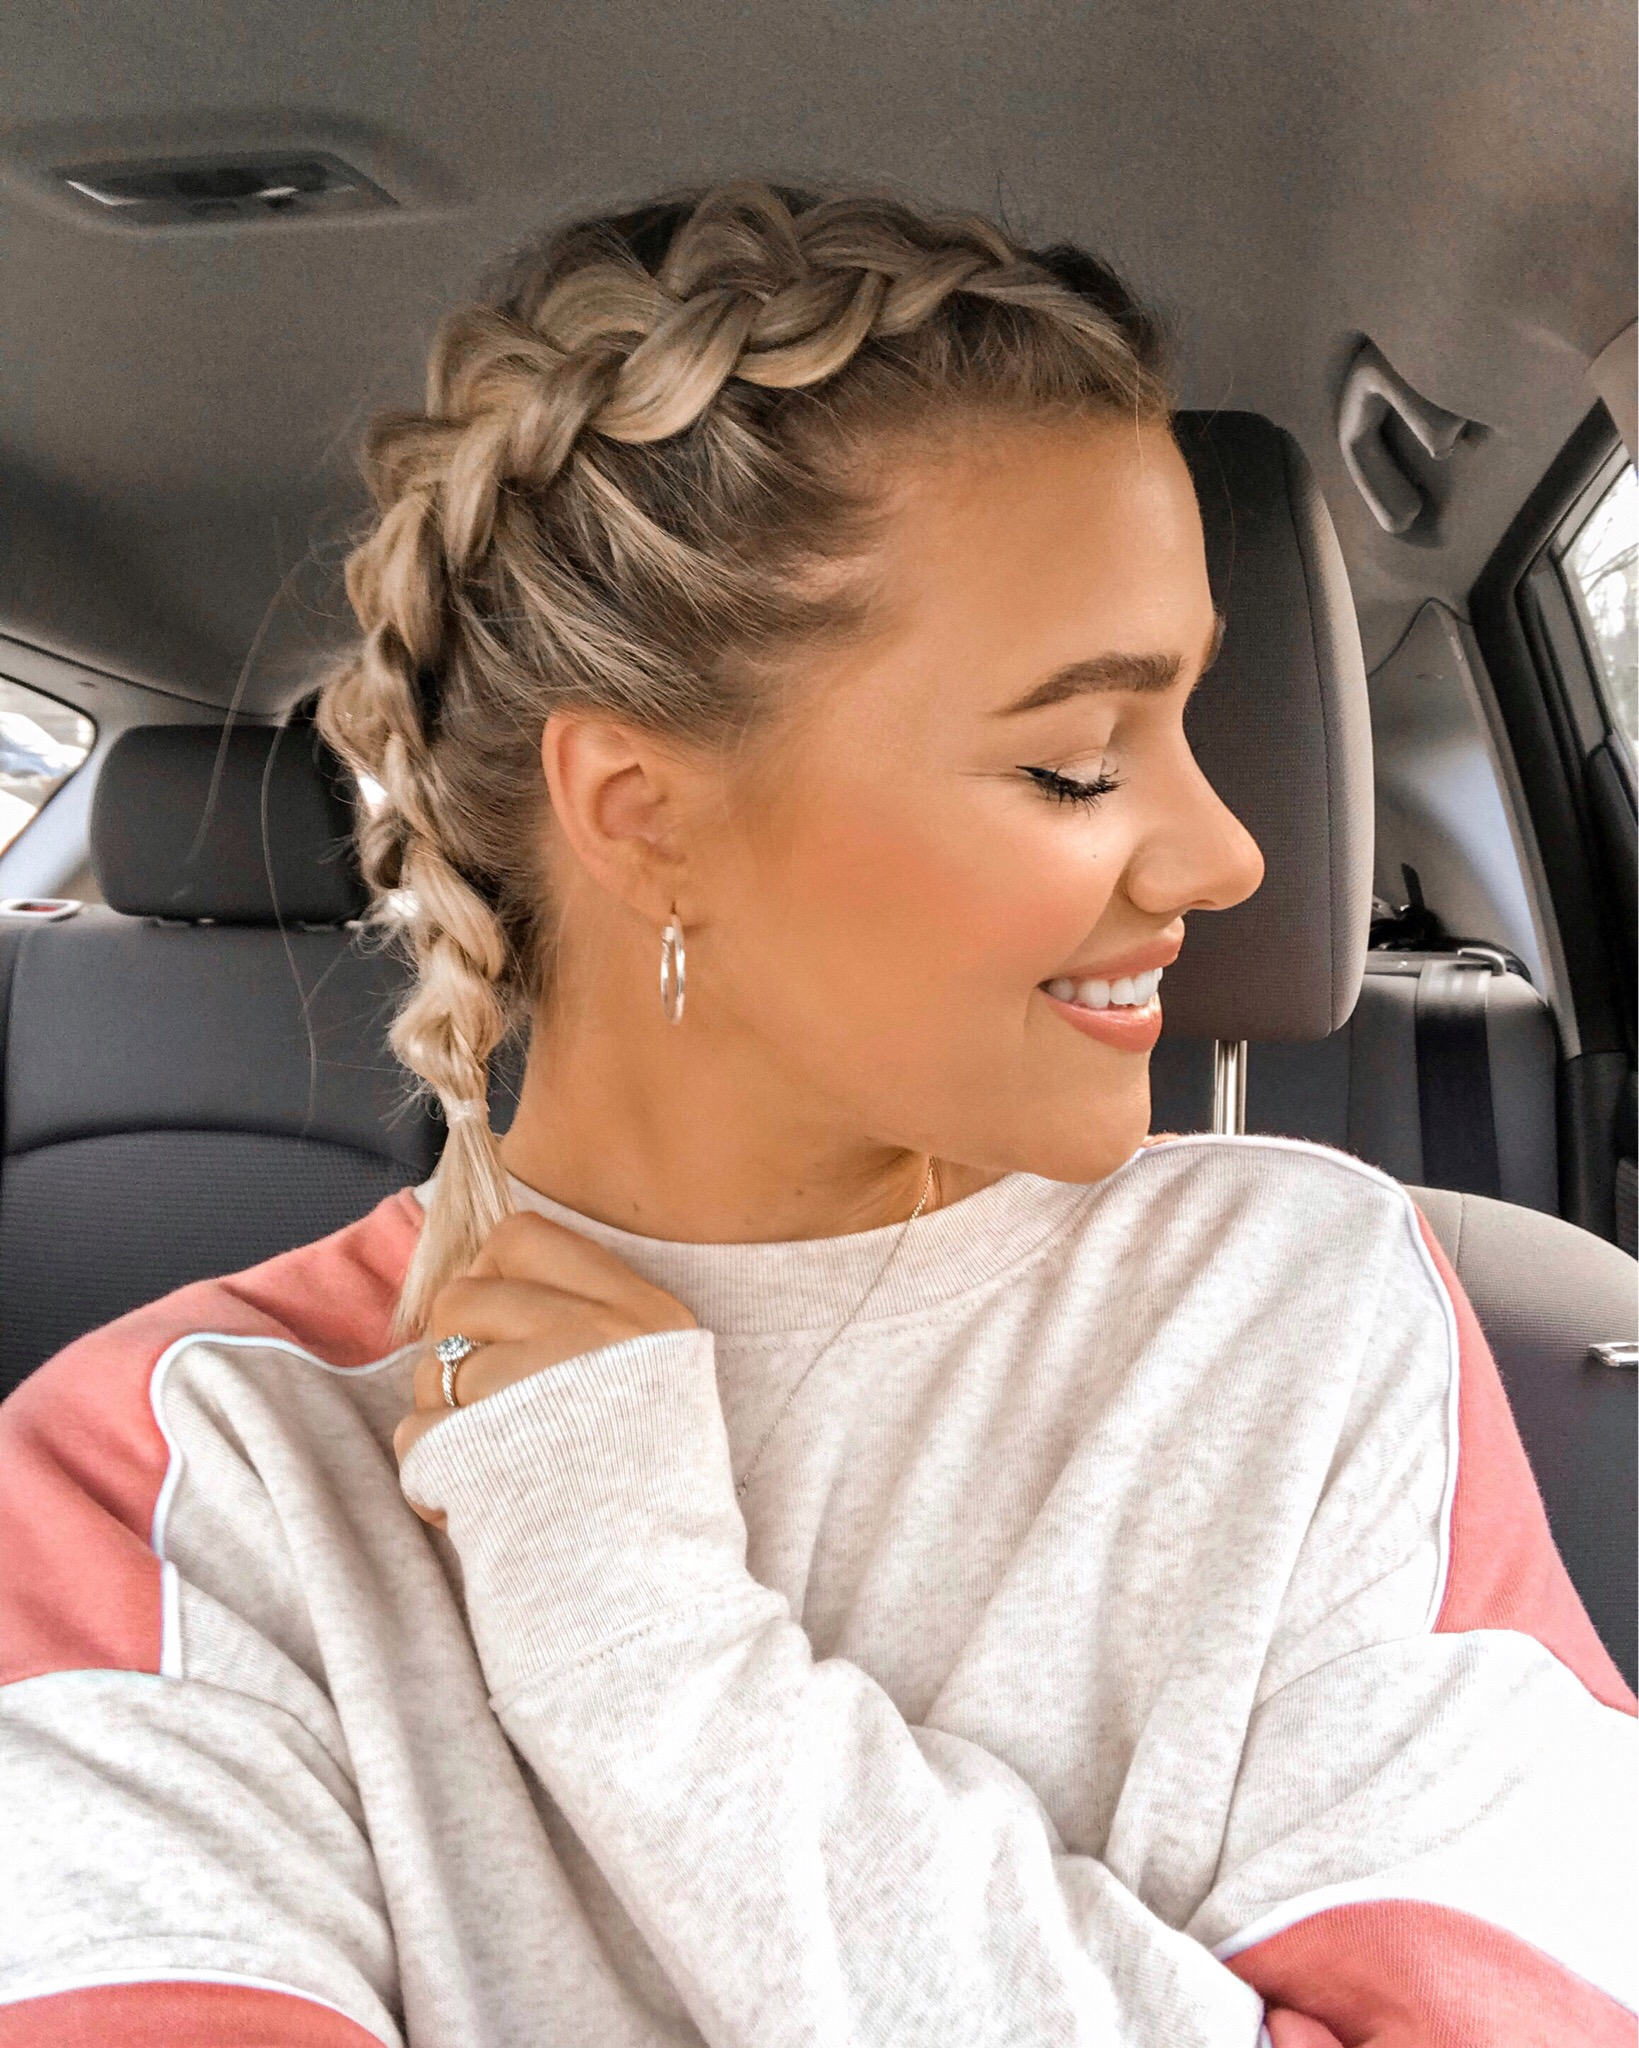 BRE SHEPPARD - Isle Of Paradise Tanning Drops HOW TO : Braid Inspo : Hair Inspo.JPG